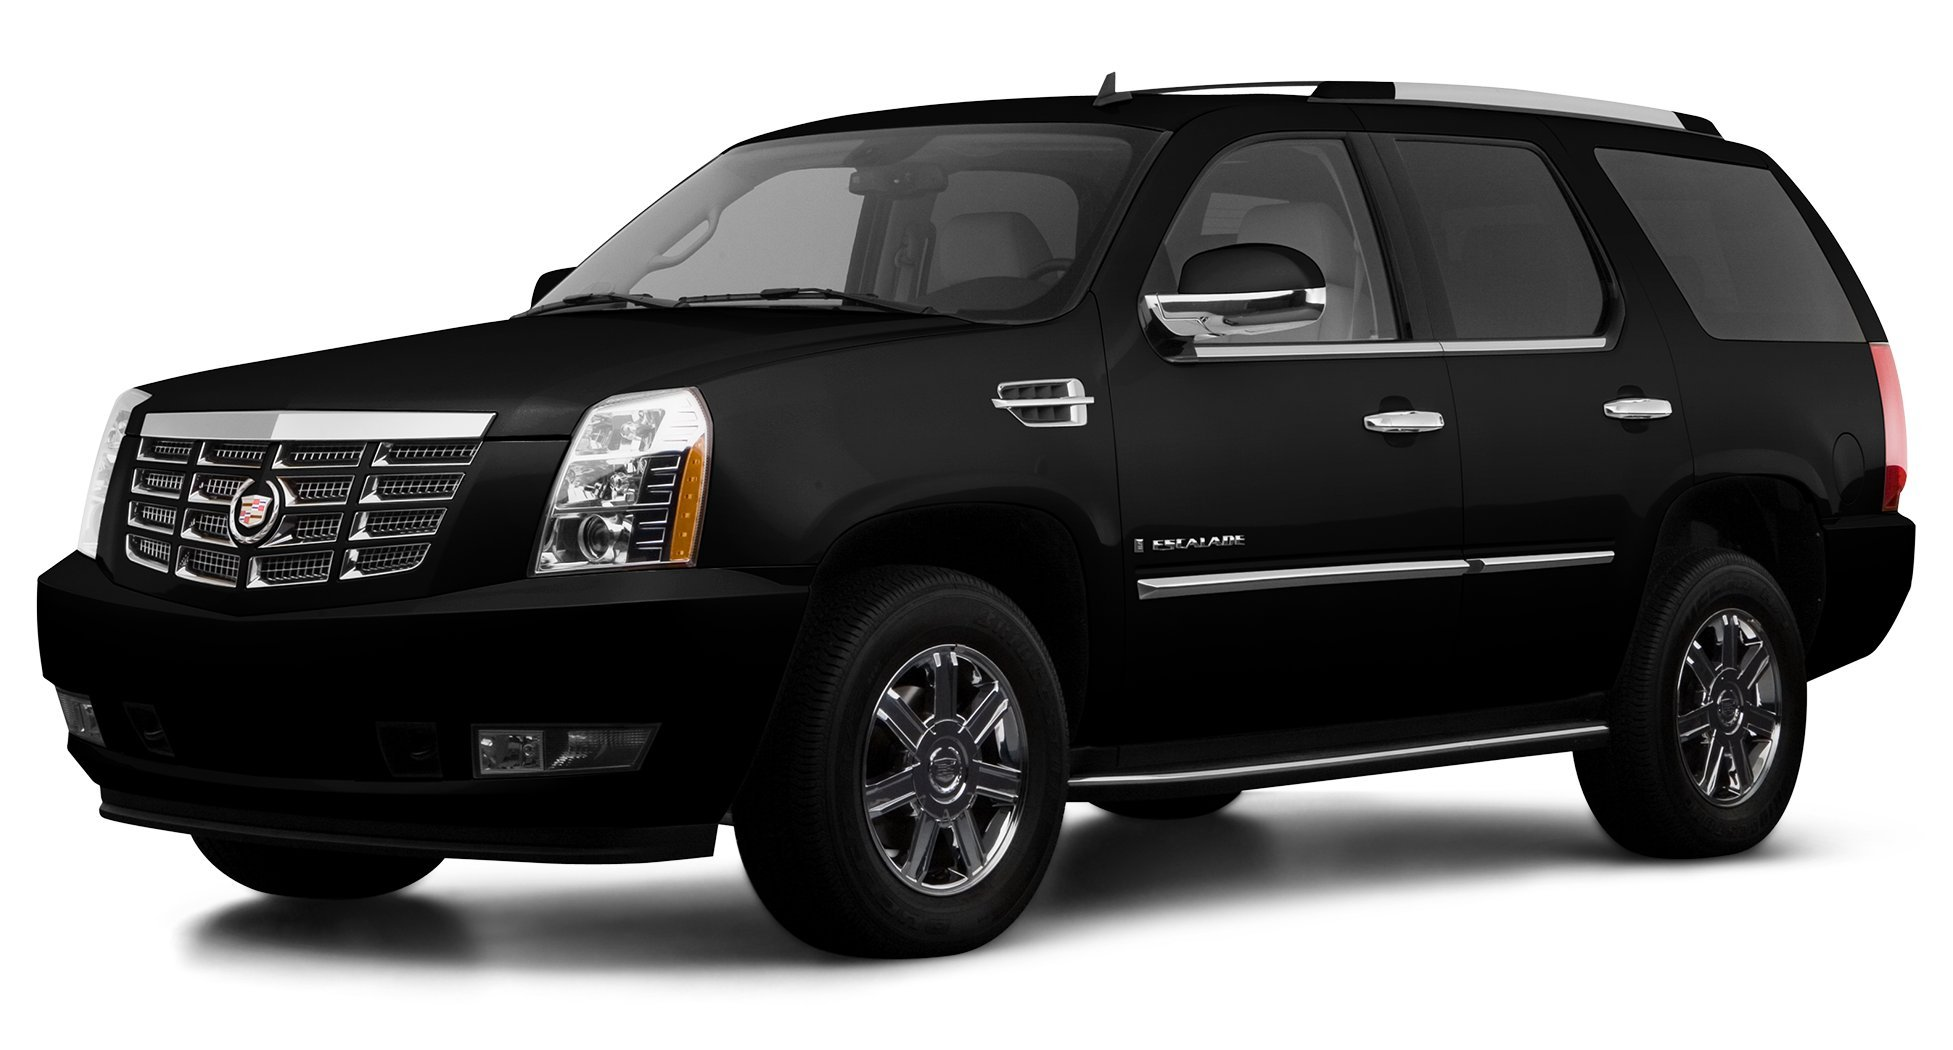 amazon com 2008 cadillac escalade esv reviews images and specs rh amazon com 2006 cadillac escalade ext owners manual 2007 Cadillac Escalade Ext